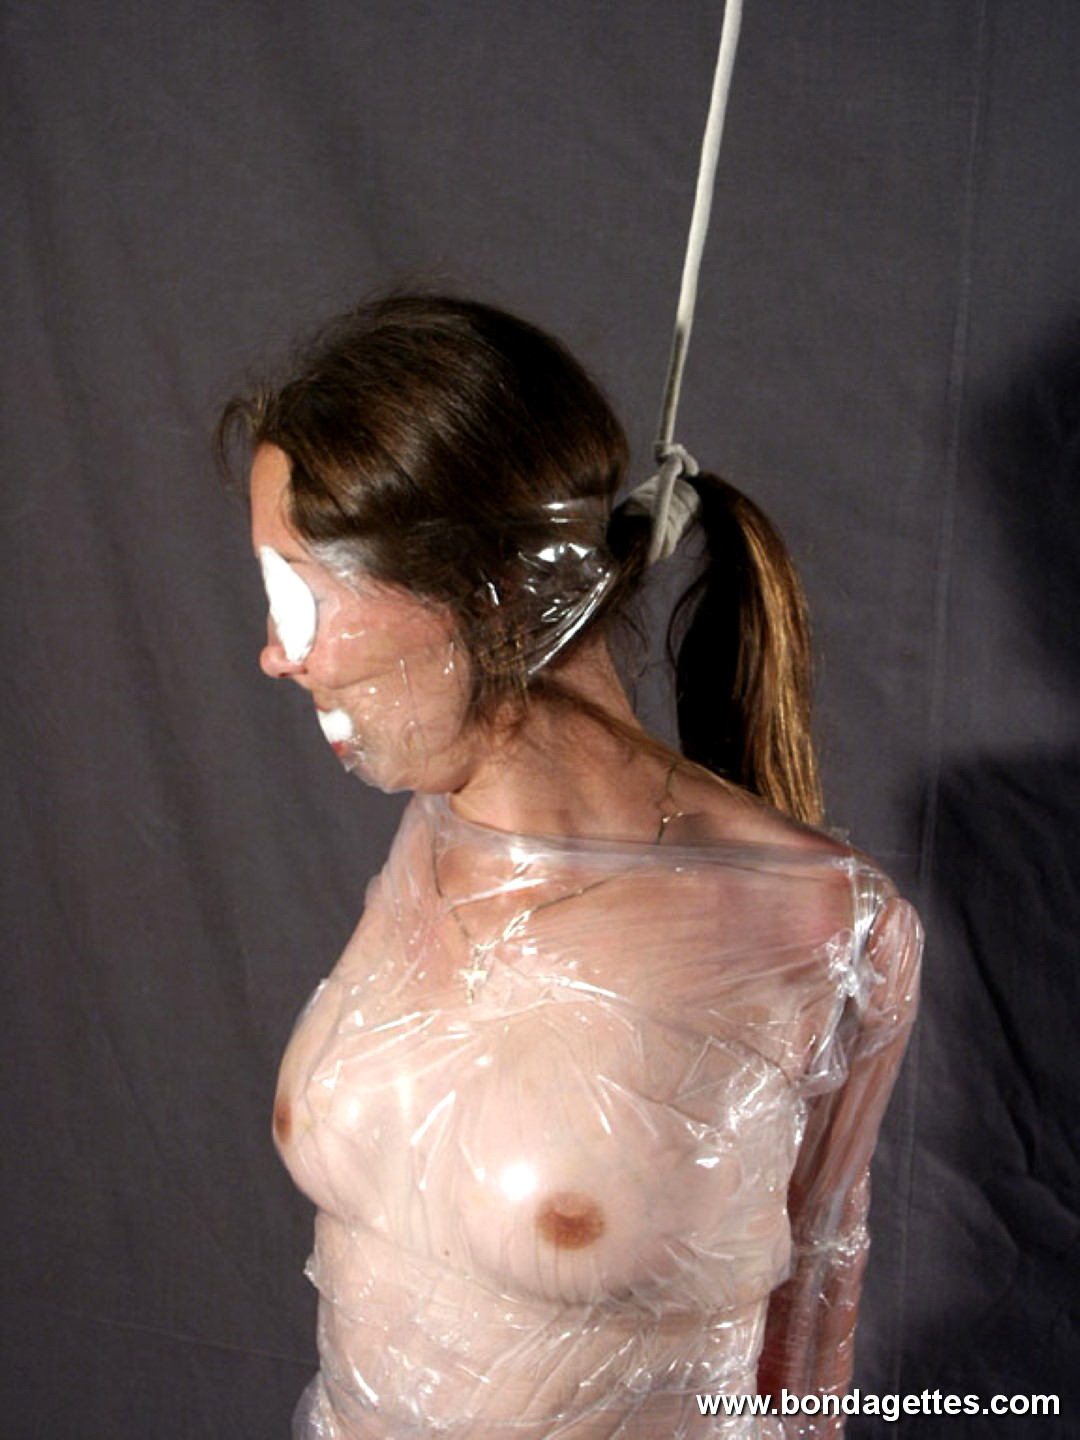 nude-dude-sensory-deprivation-wrap-femdom-pics-free-jersey